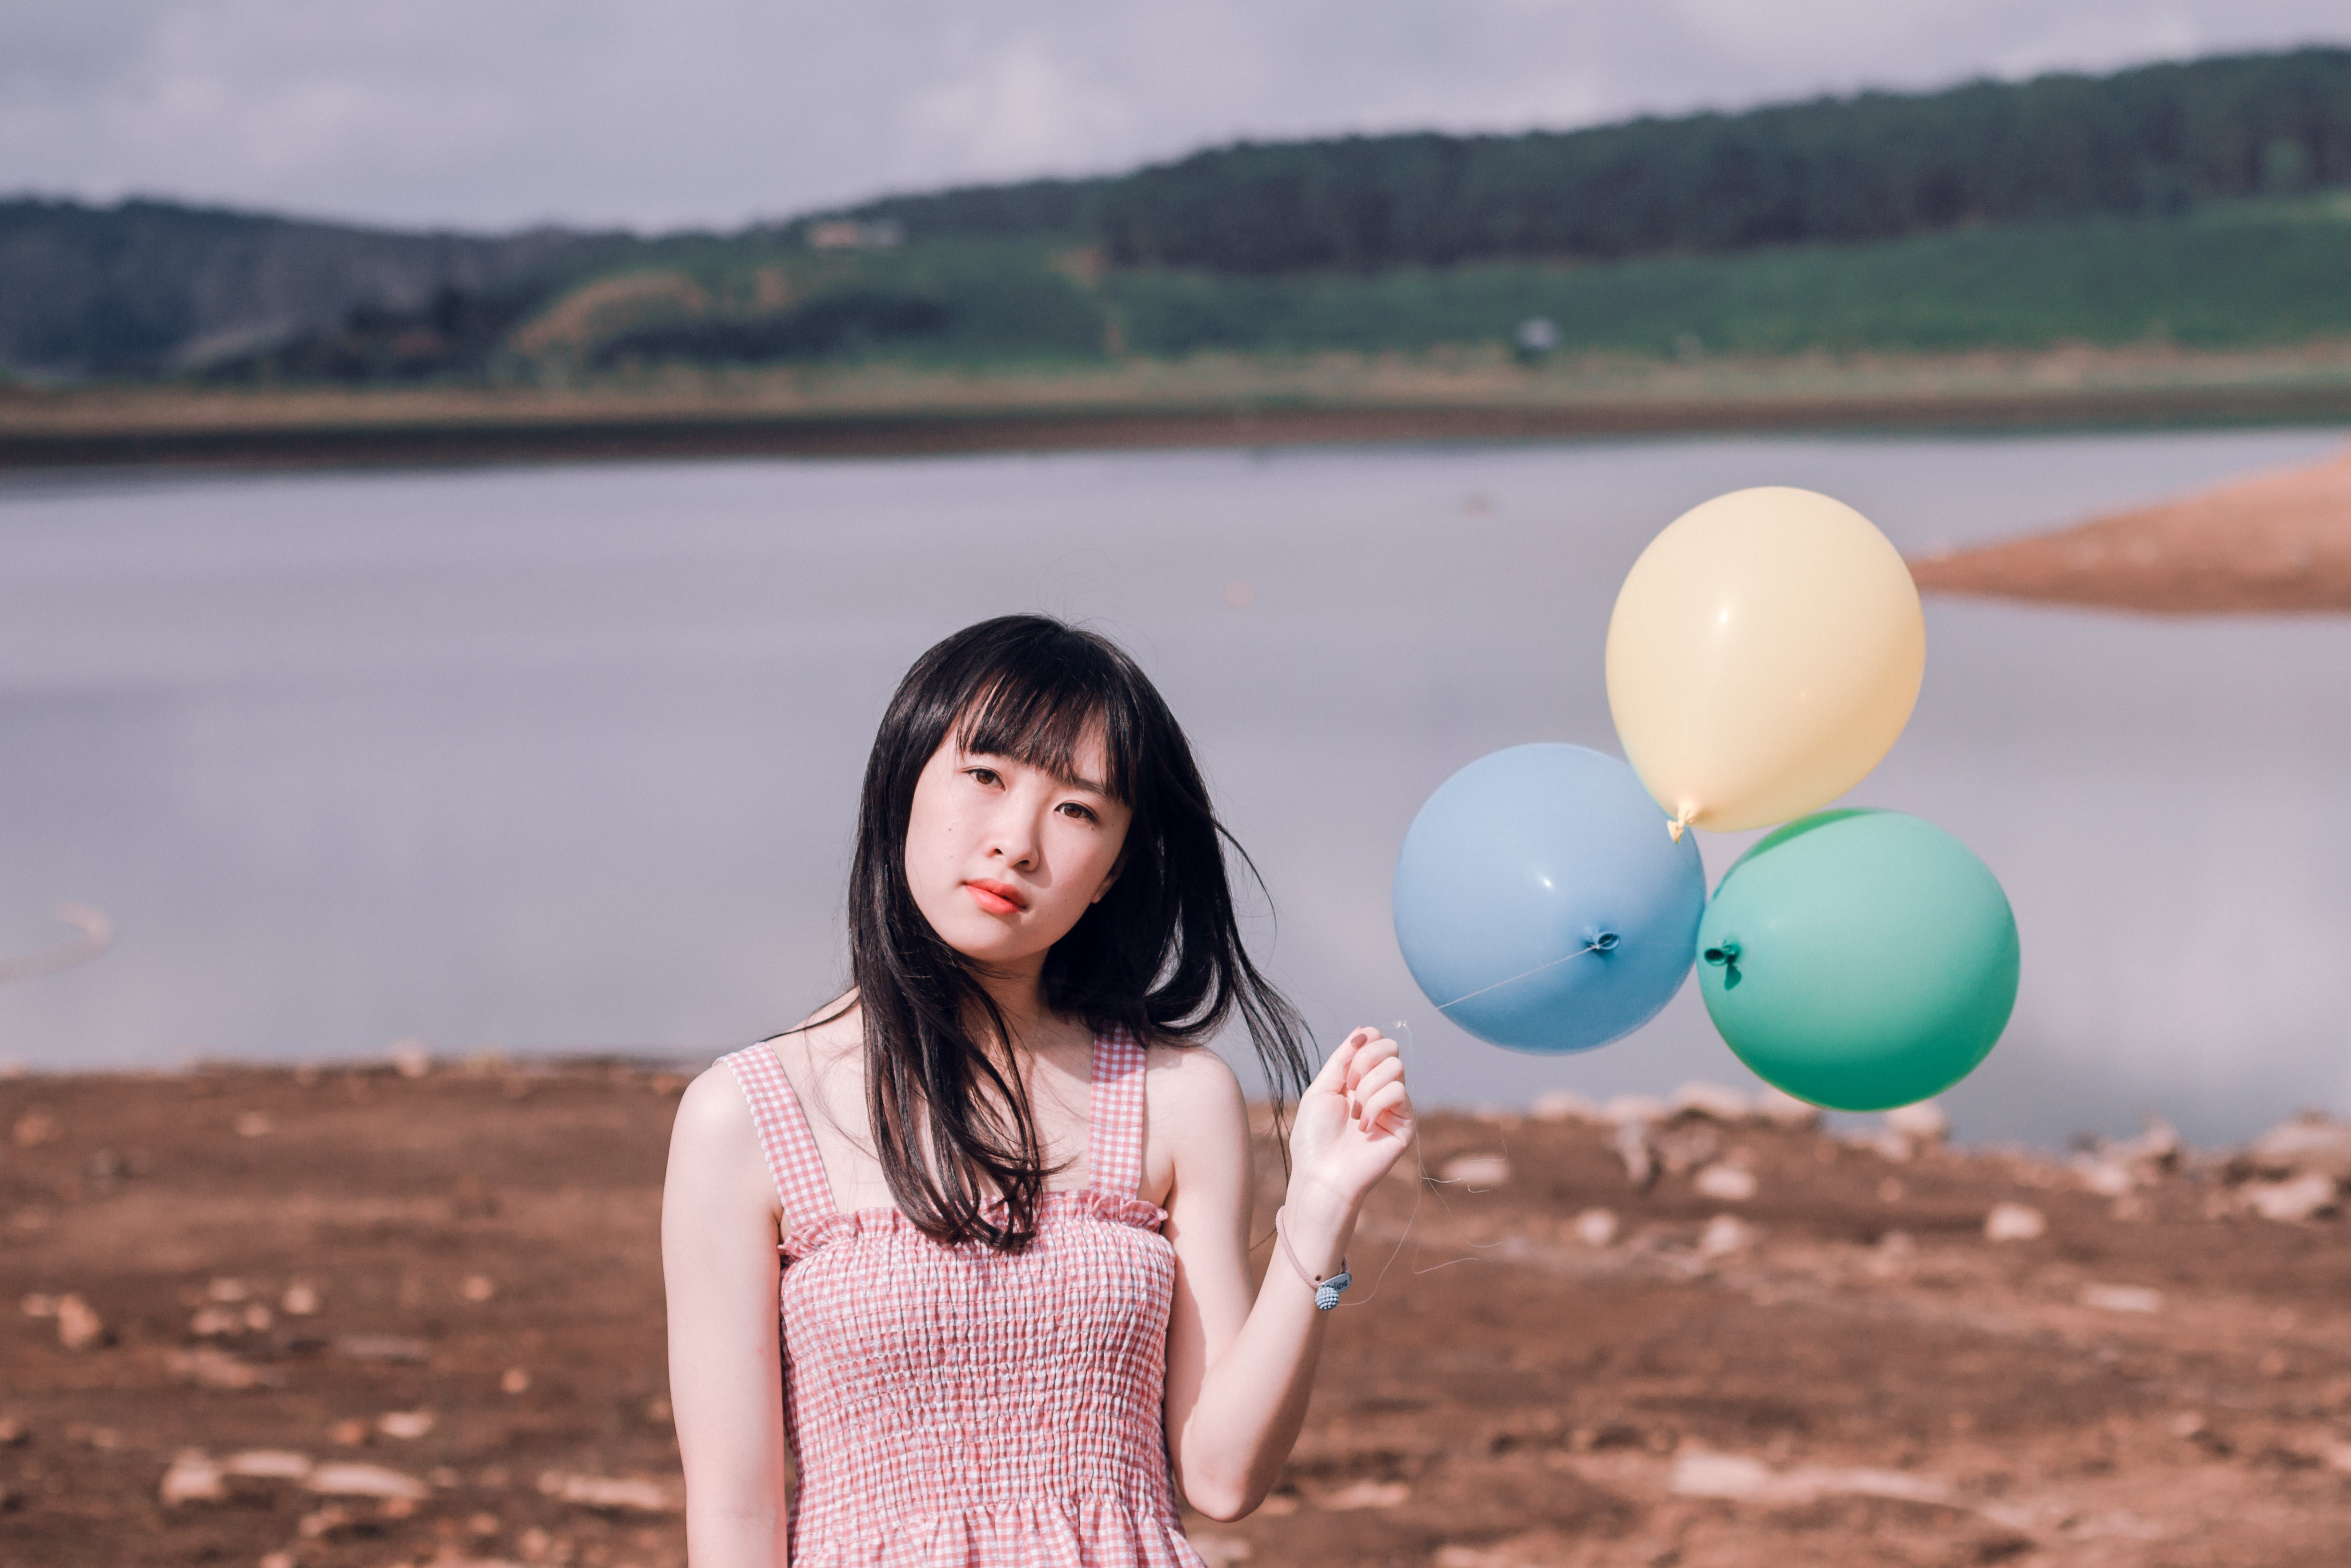 Girl in Pink Sleeveless Top Holds Three Party Balloons